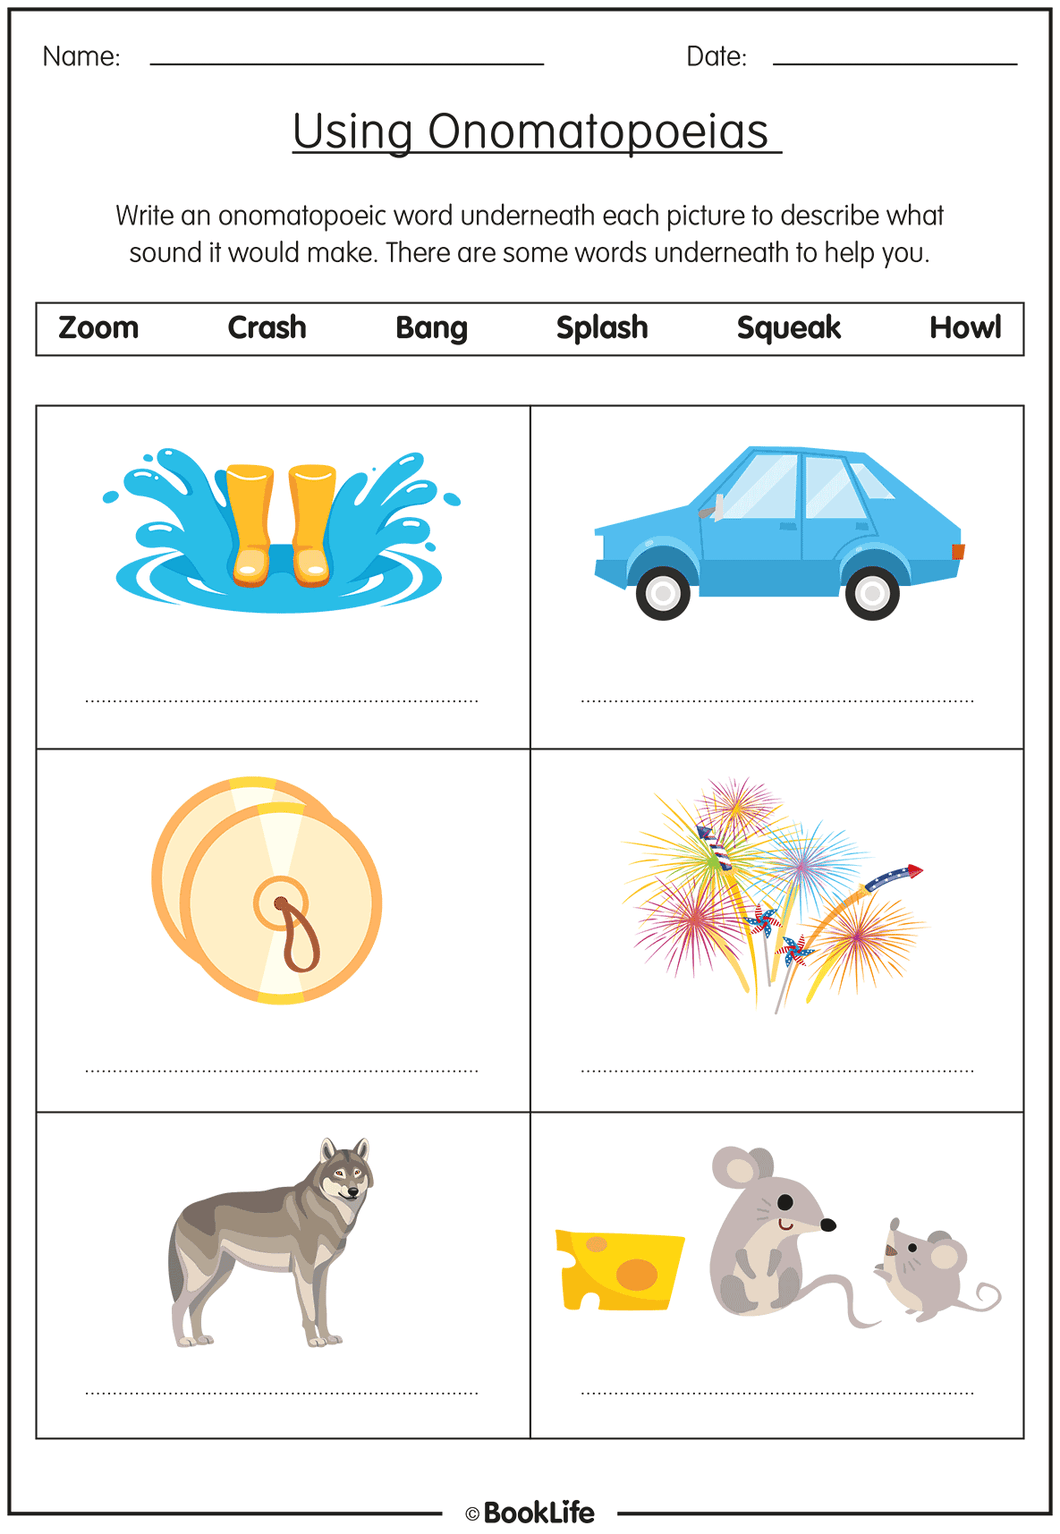 Free Onomatopoeias Activity Sheet